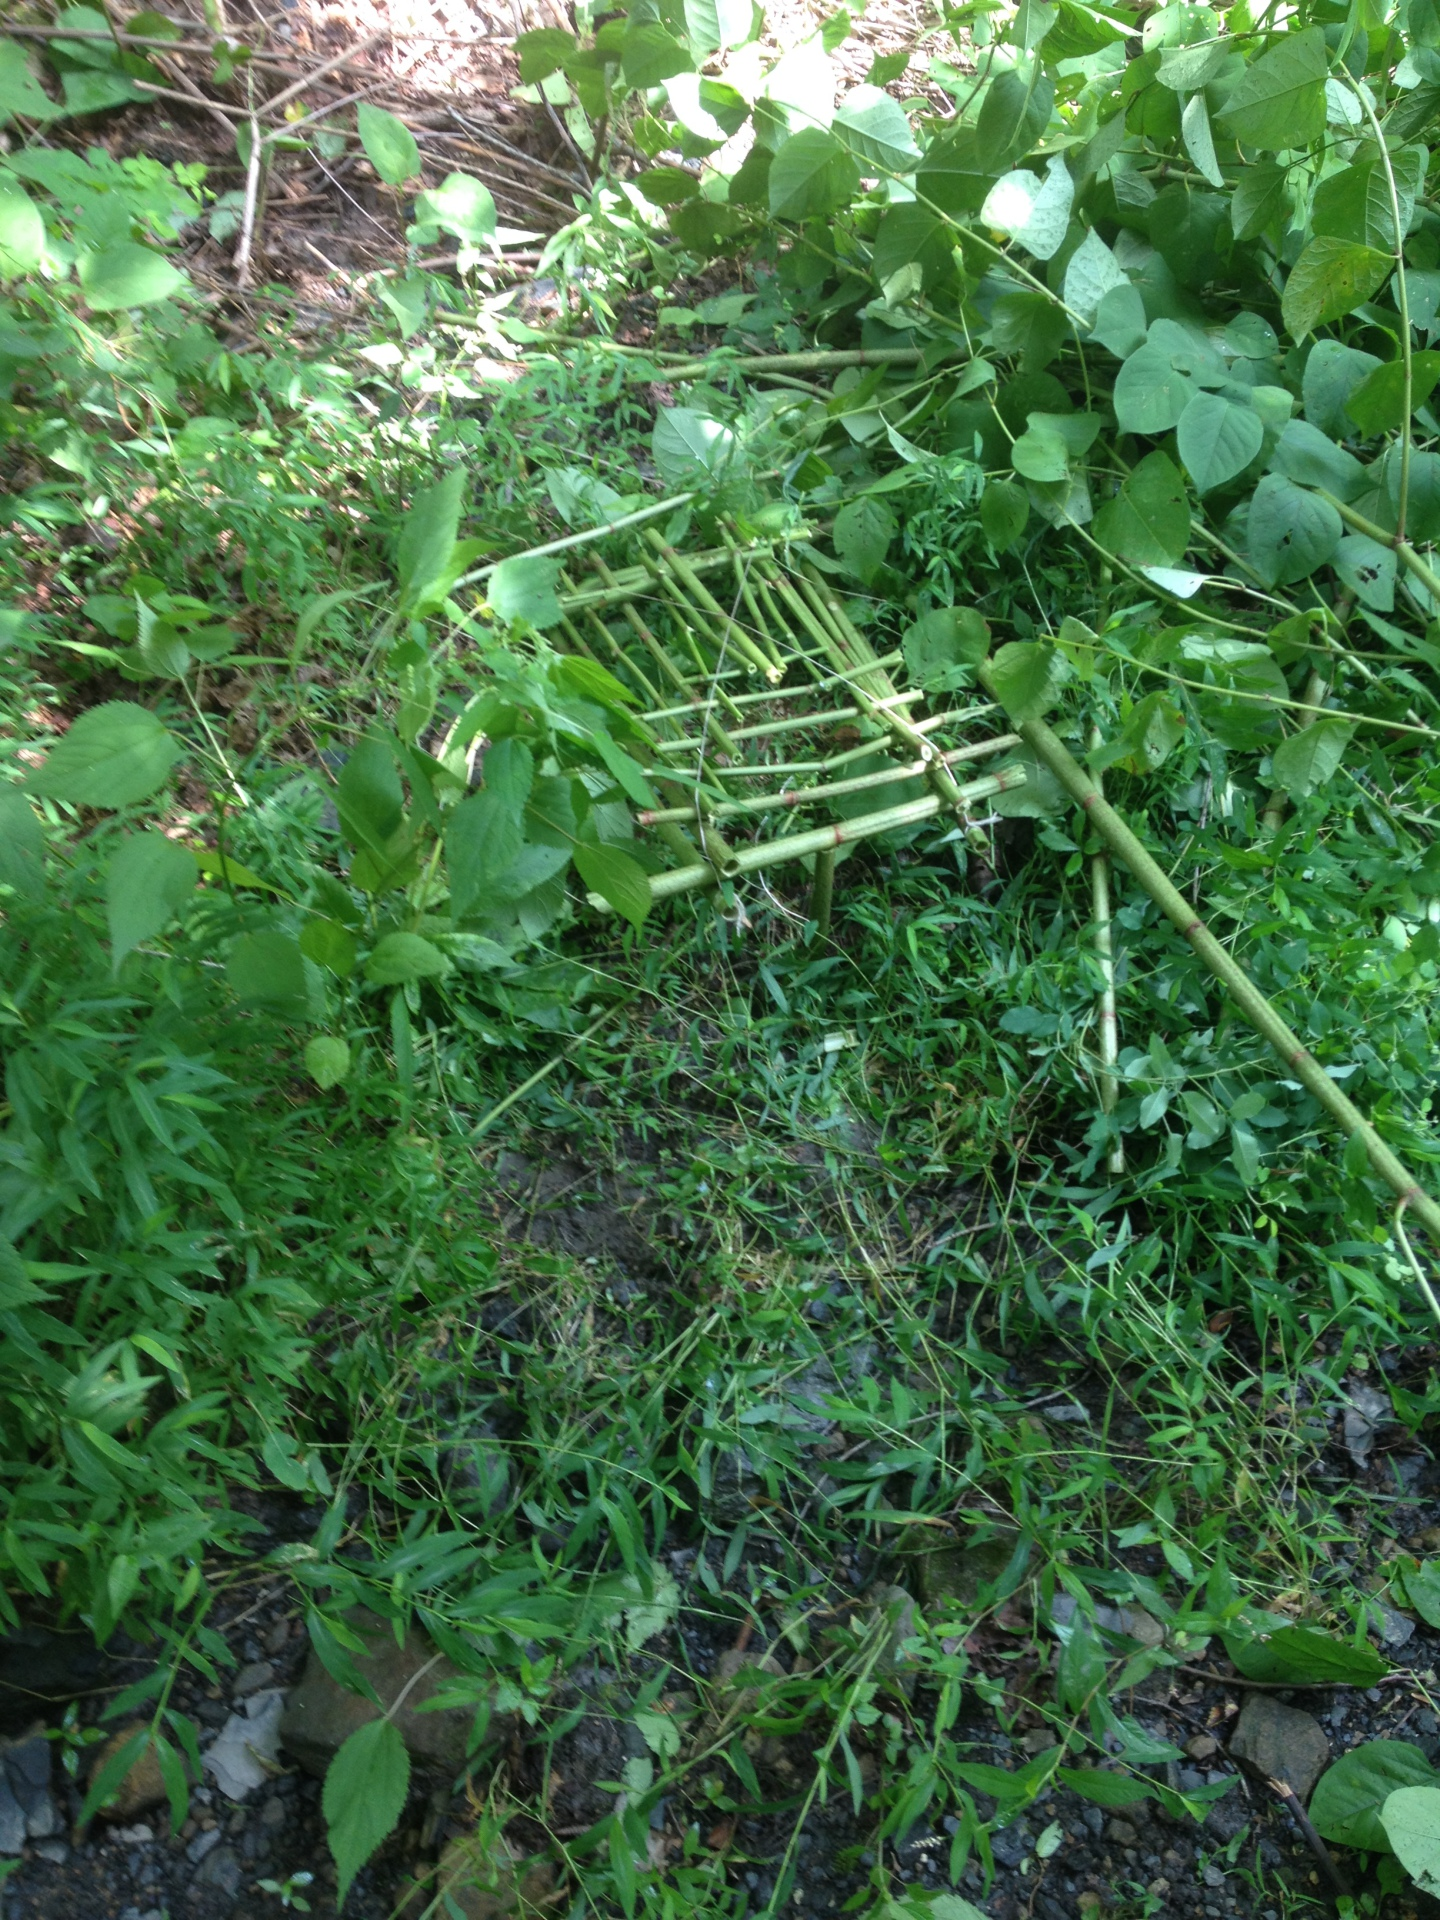 Primitive Trap:  Bird Cage type trap with split stick trigger